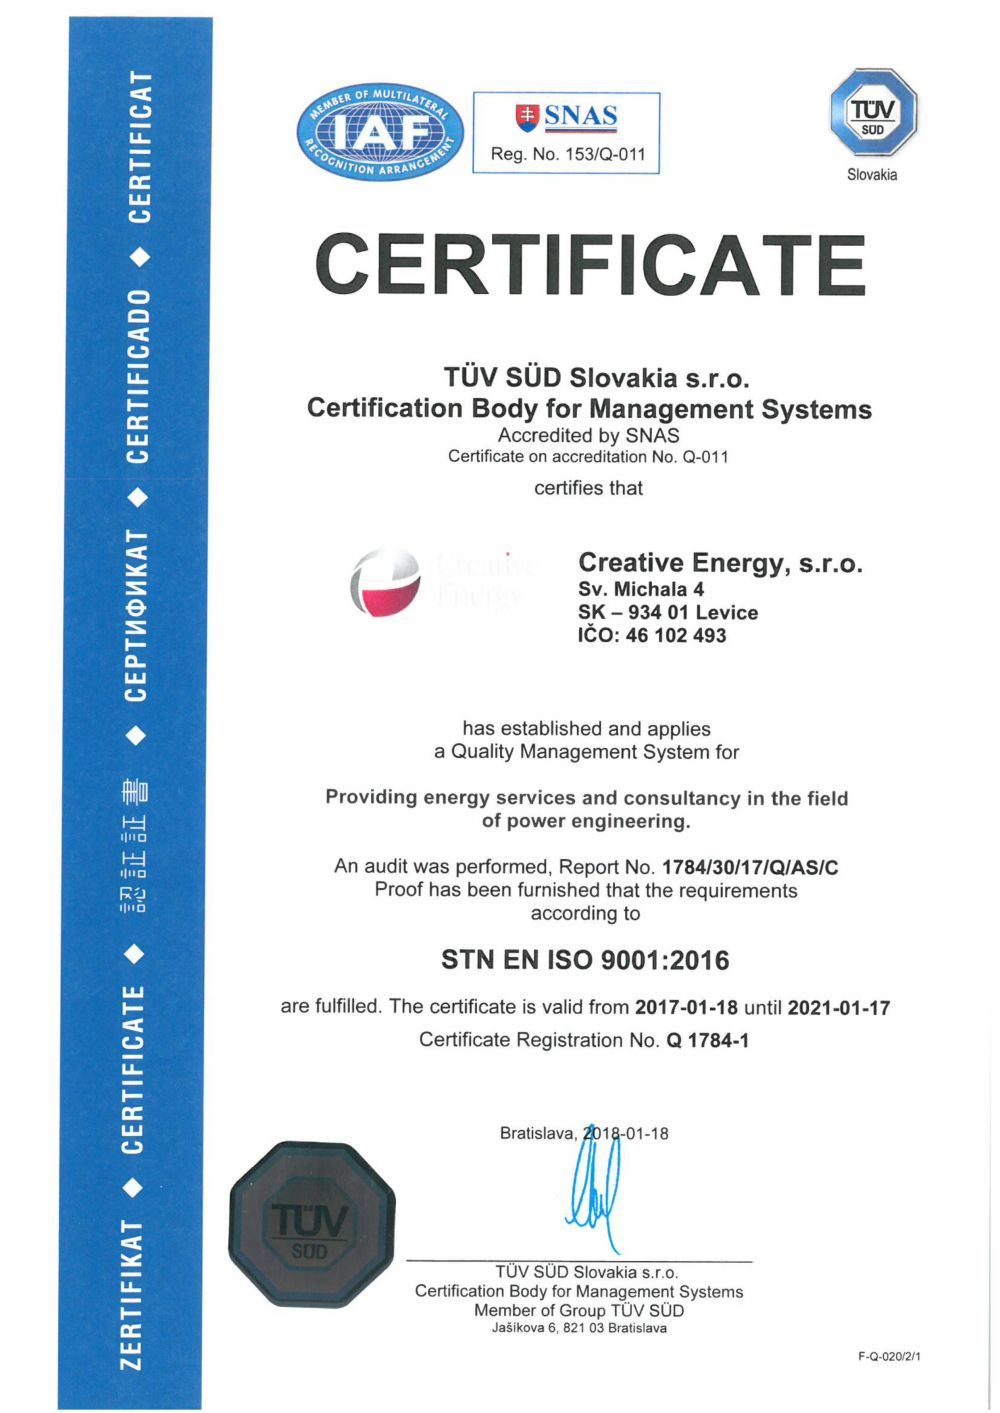 Certification body for management systems